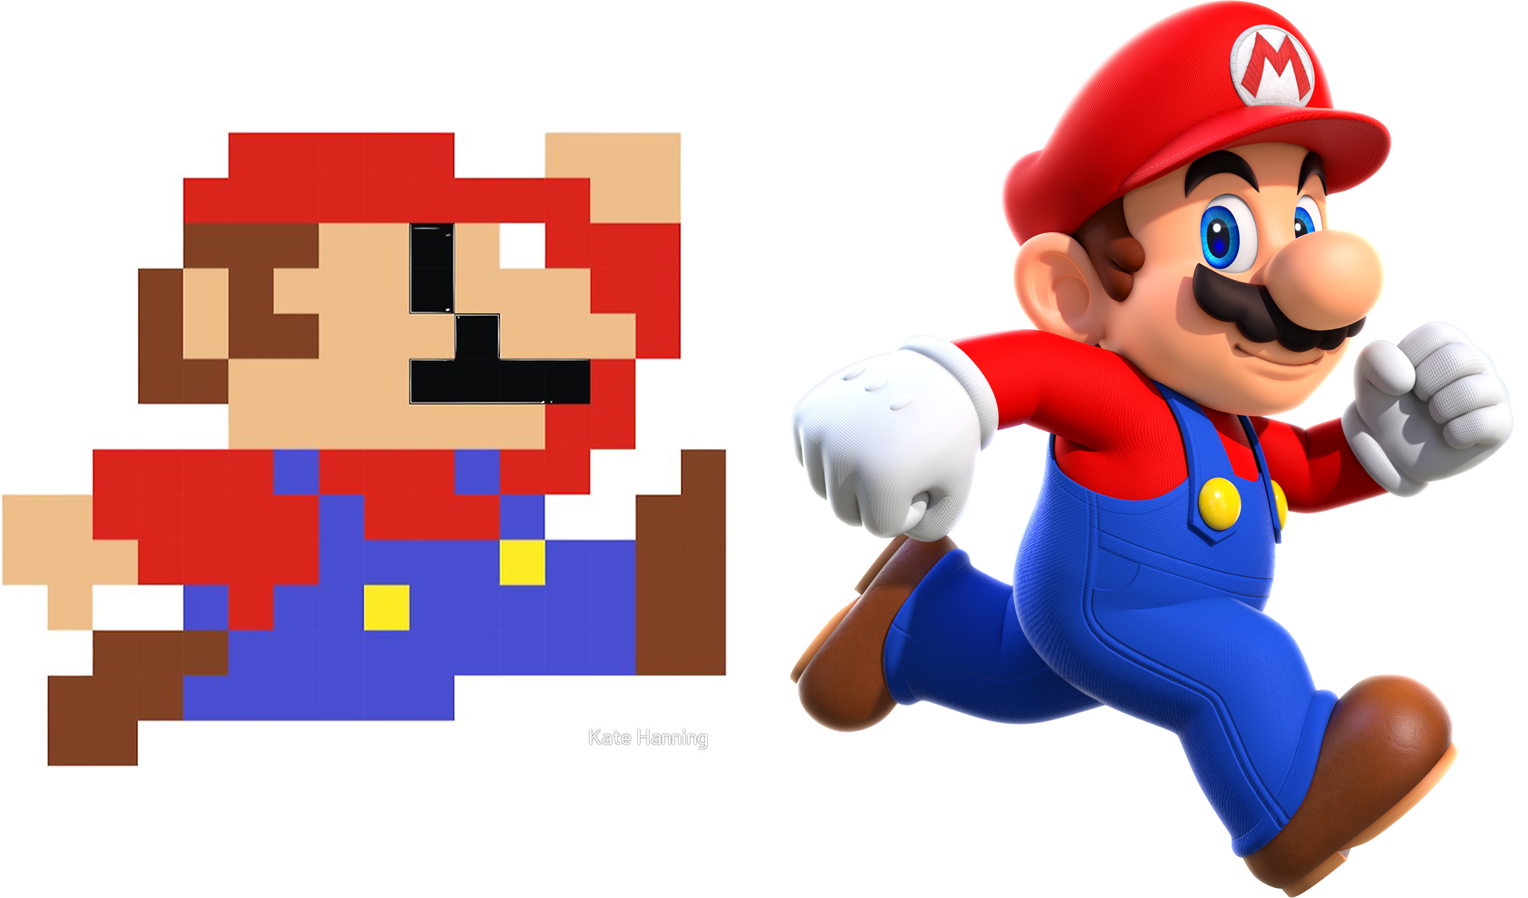 Mario at 2 different resolutions